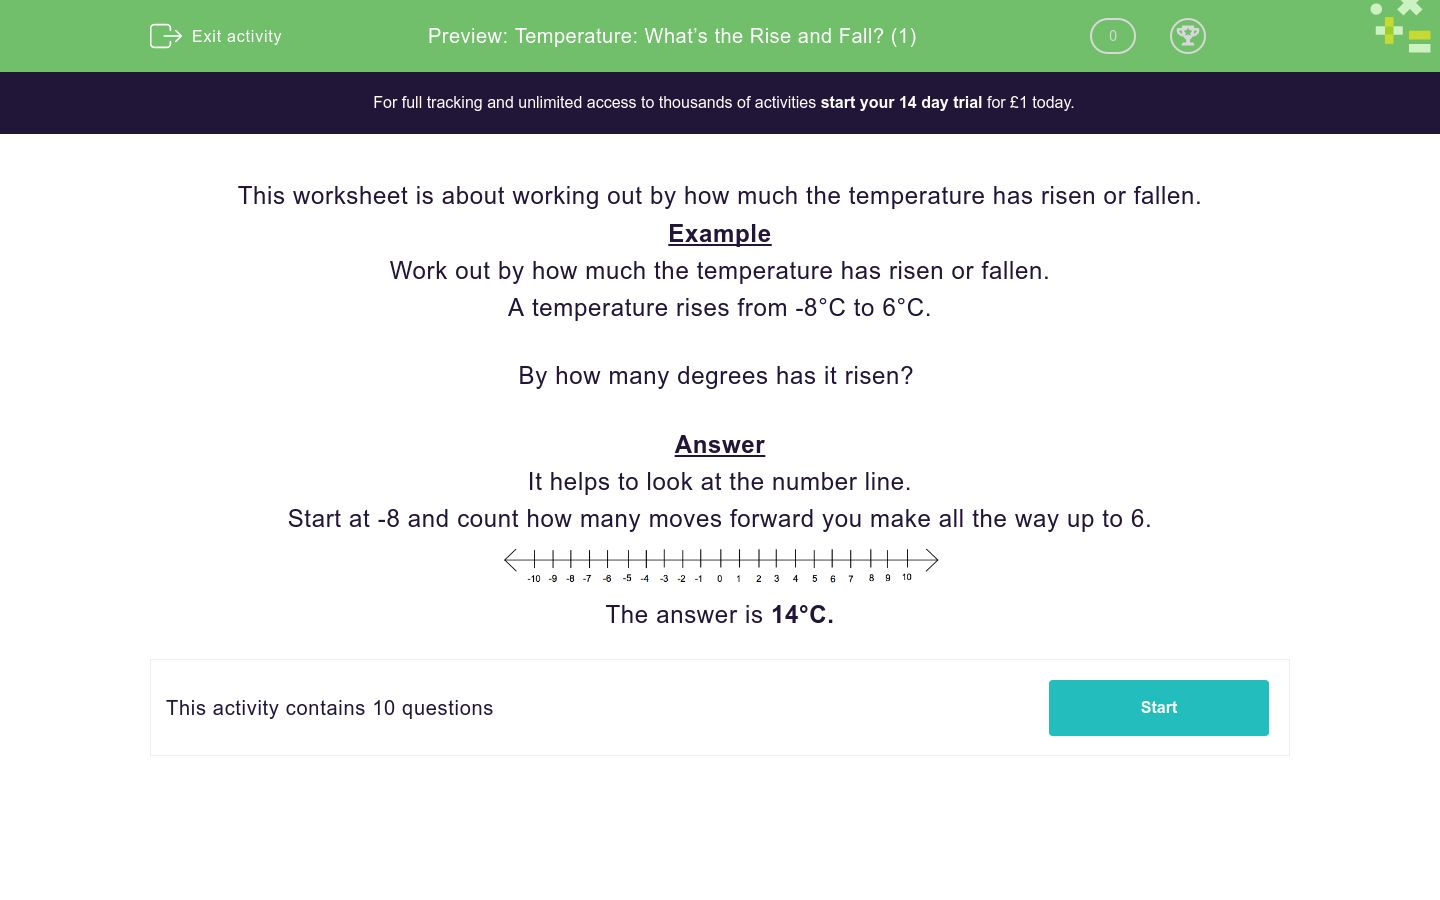 'Temperature: What's the Rise and Fall? (1)' worksheet